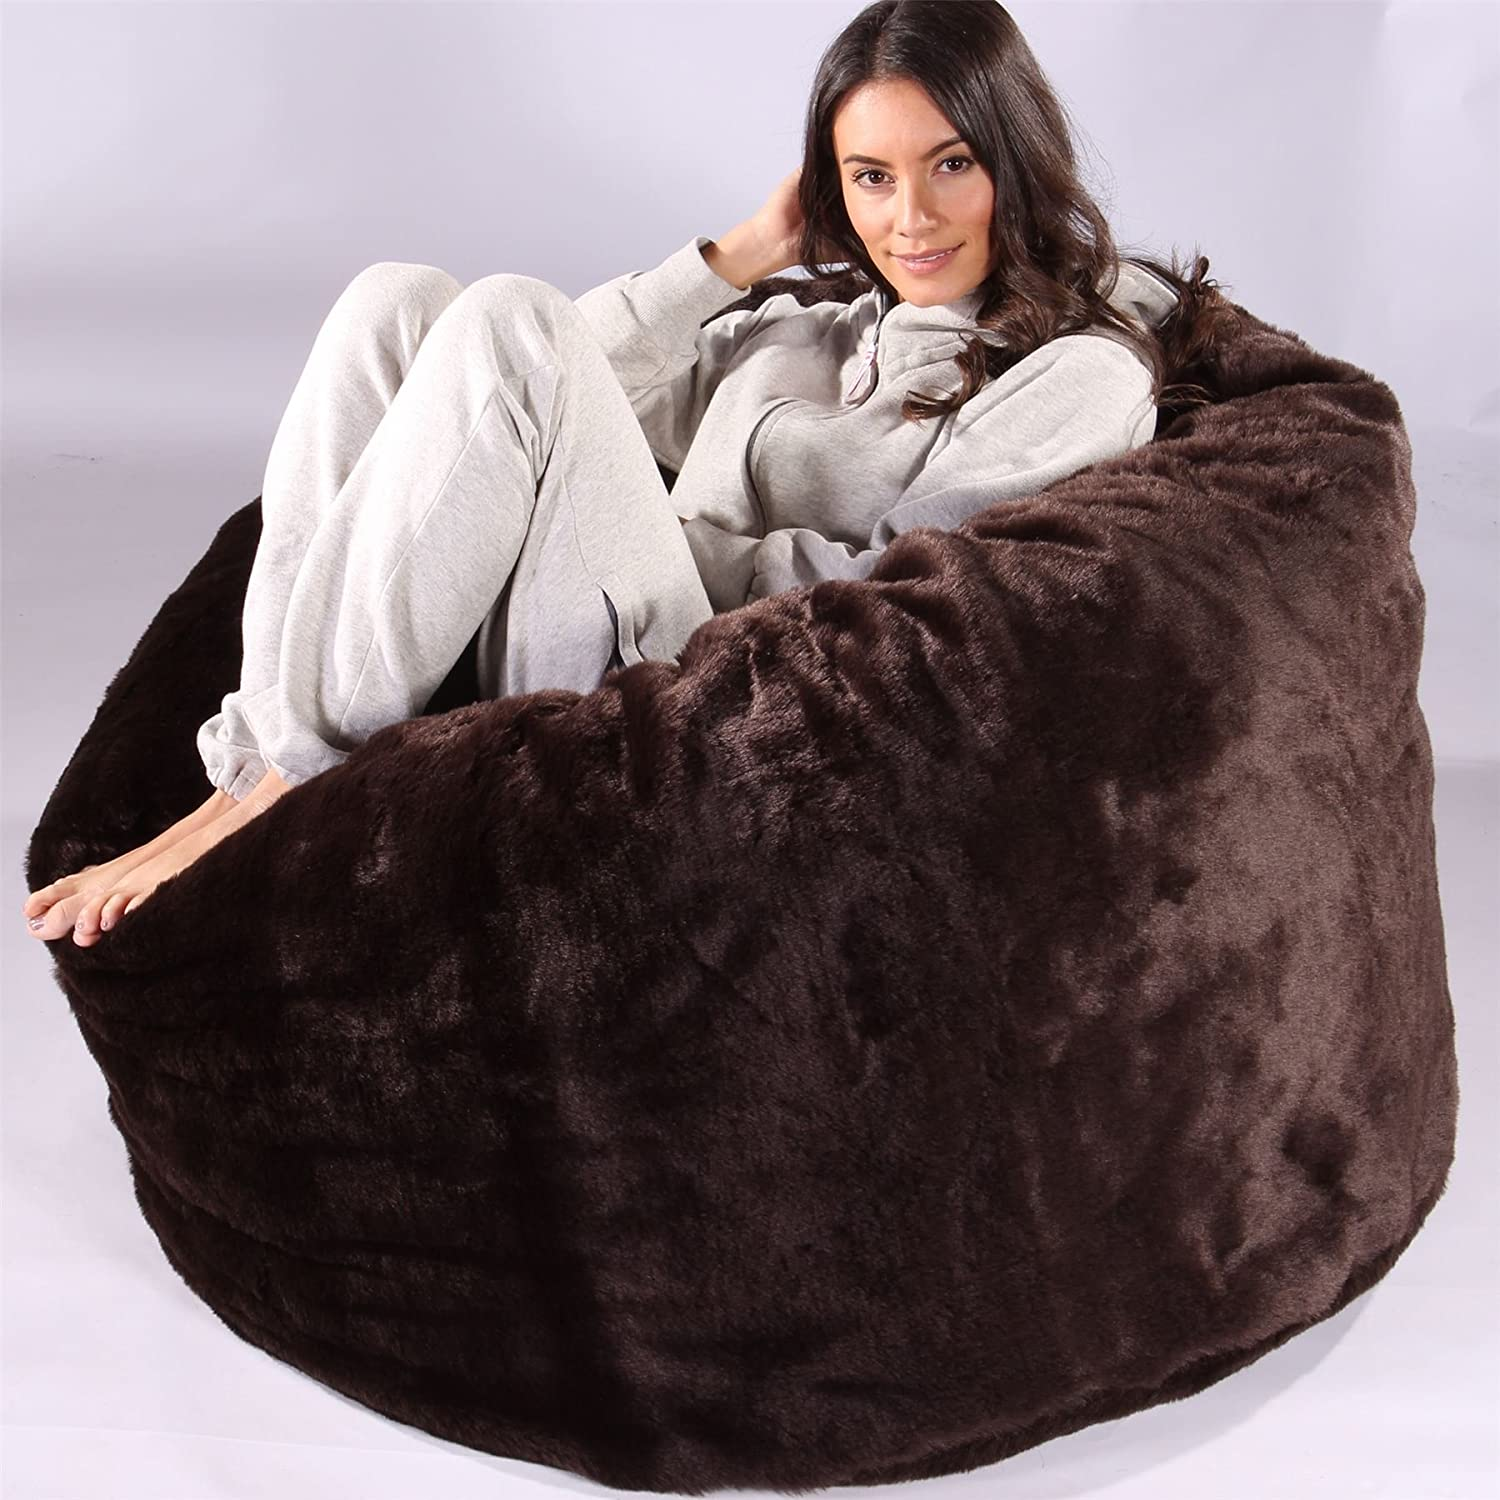 5e9a5b486d Lounge Pug® - CLOUDSAC - Fluffy FAUX FUR - Large Memory Foam GIANT Bean Bag  - The GIANT - BROWN Bear  Amazon.co.uk  Kitchen   Home